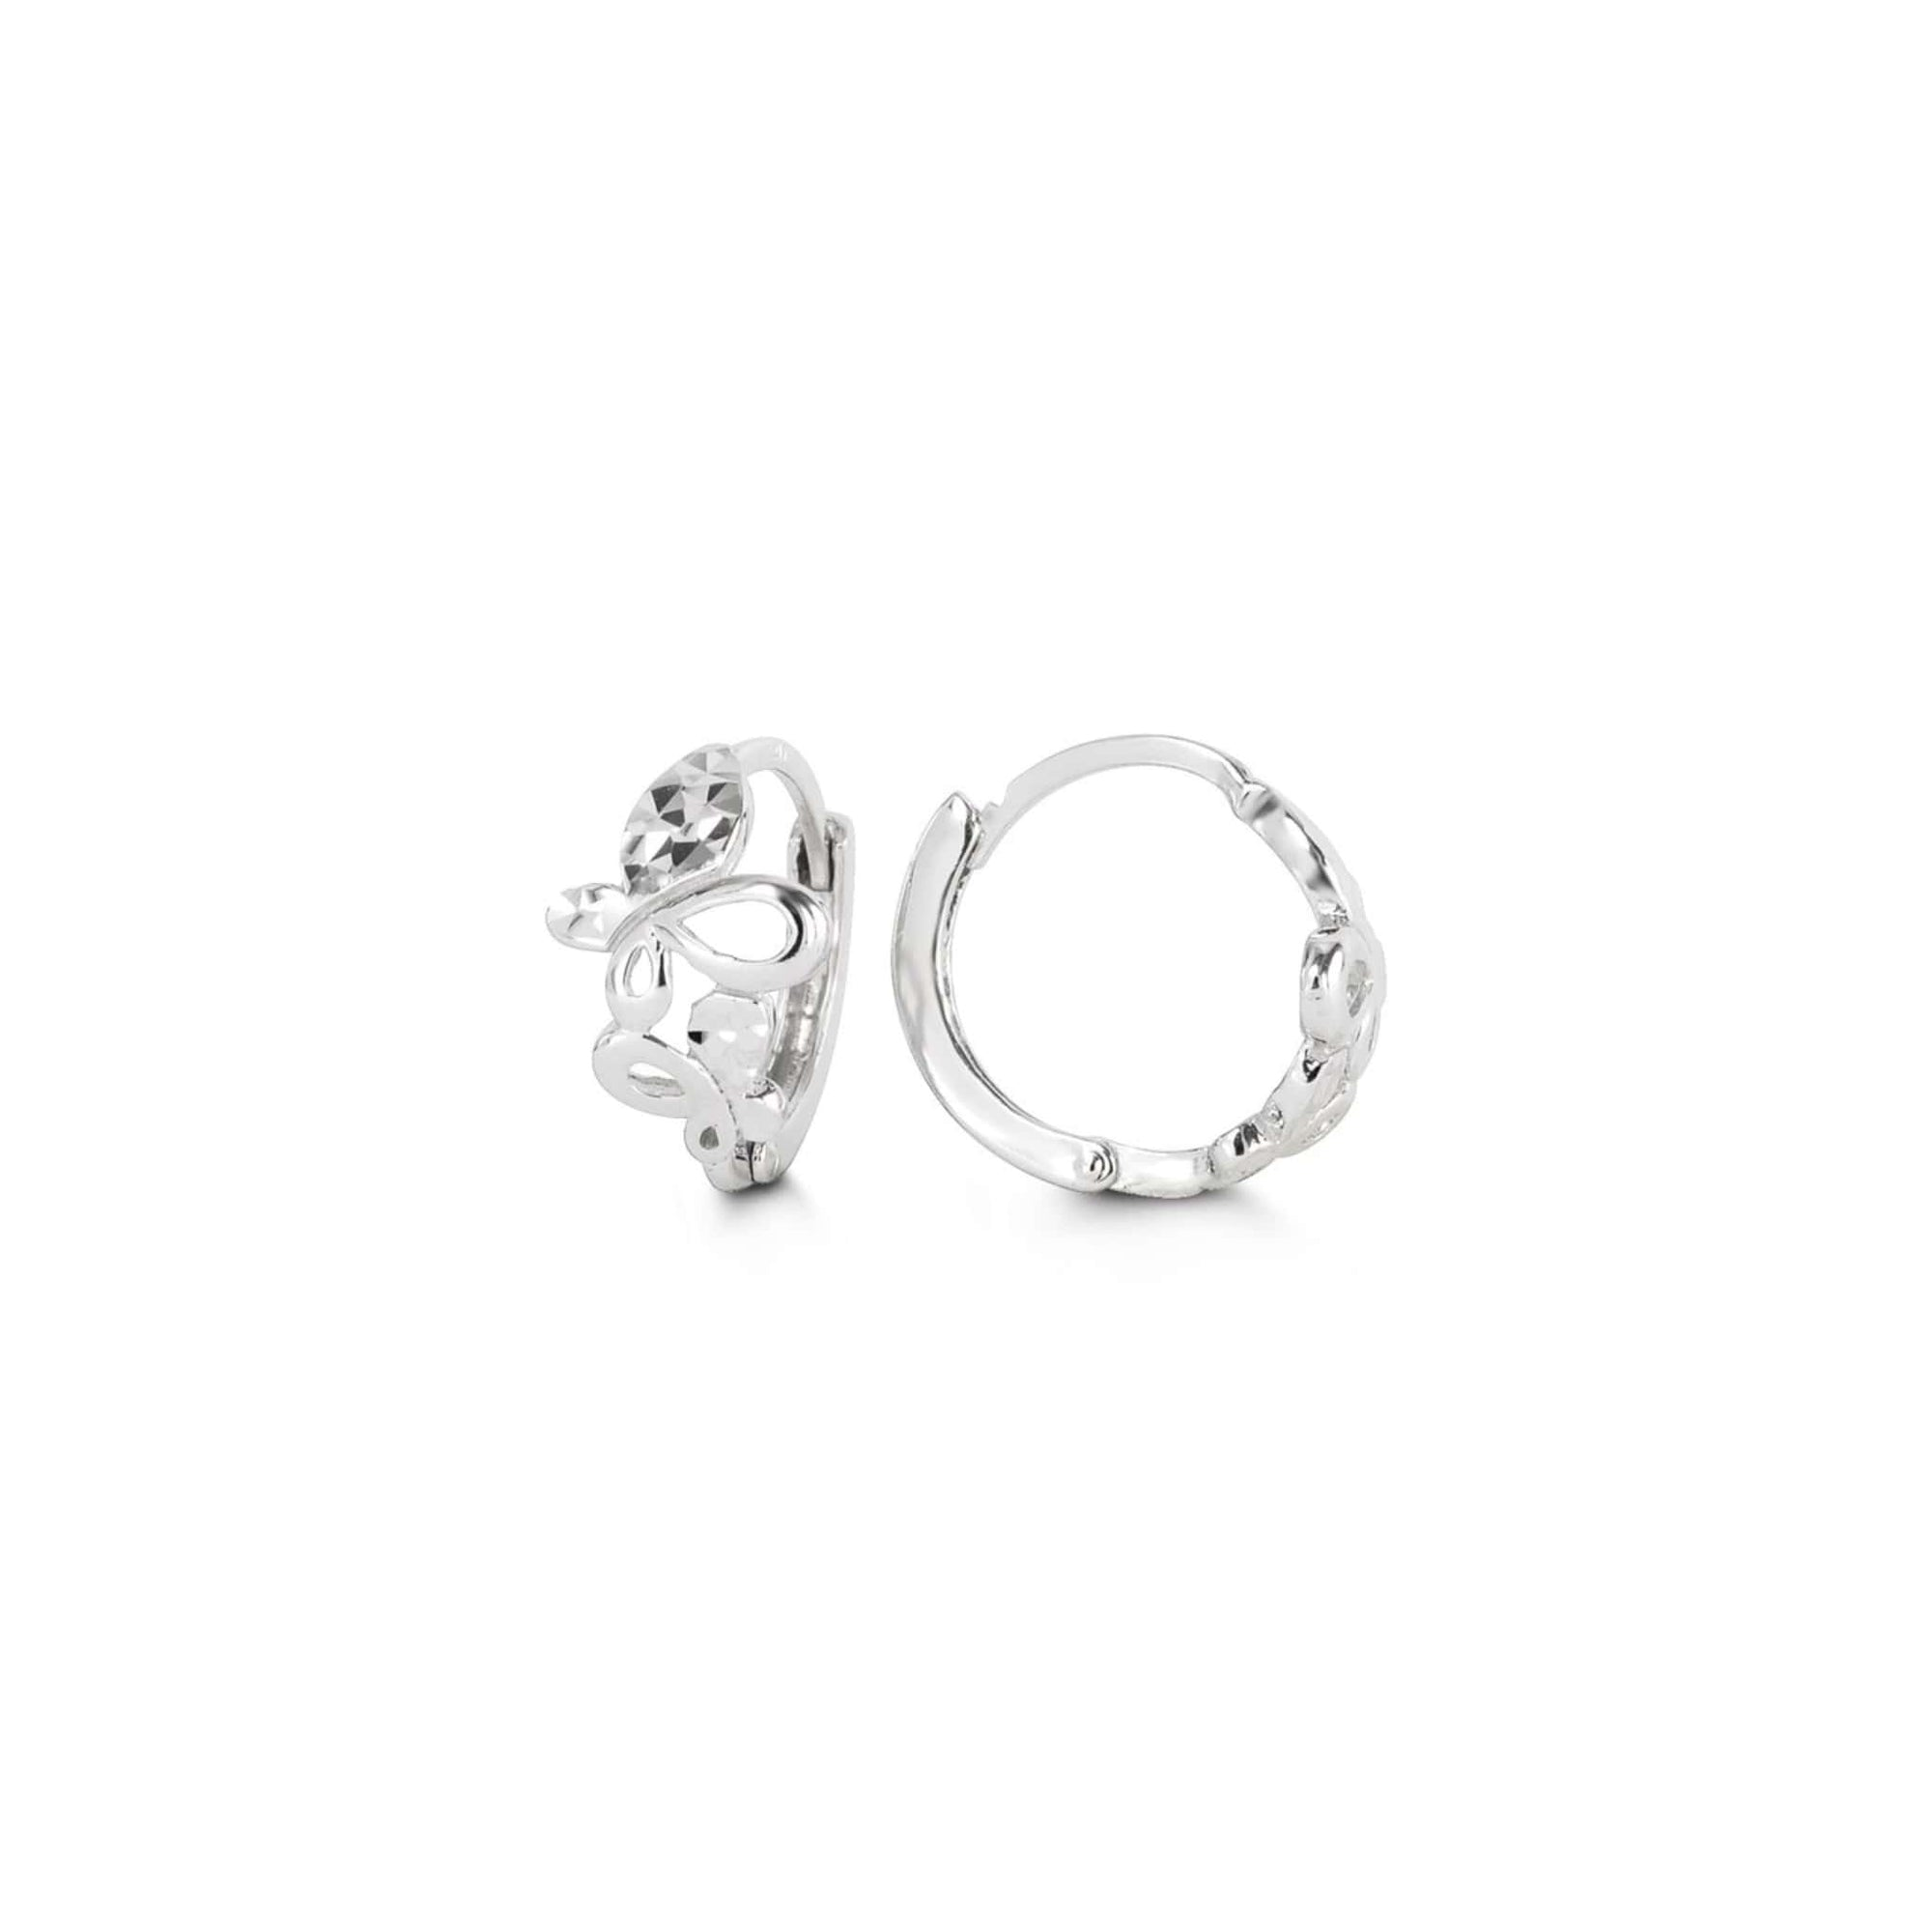 10K White Gold Butterfly Huggie Hoop Earrings at Arman's Jewellers